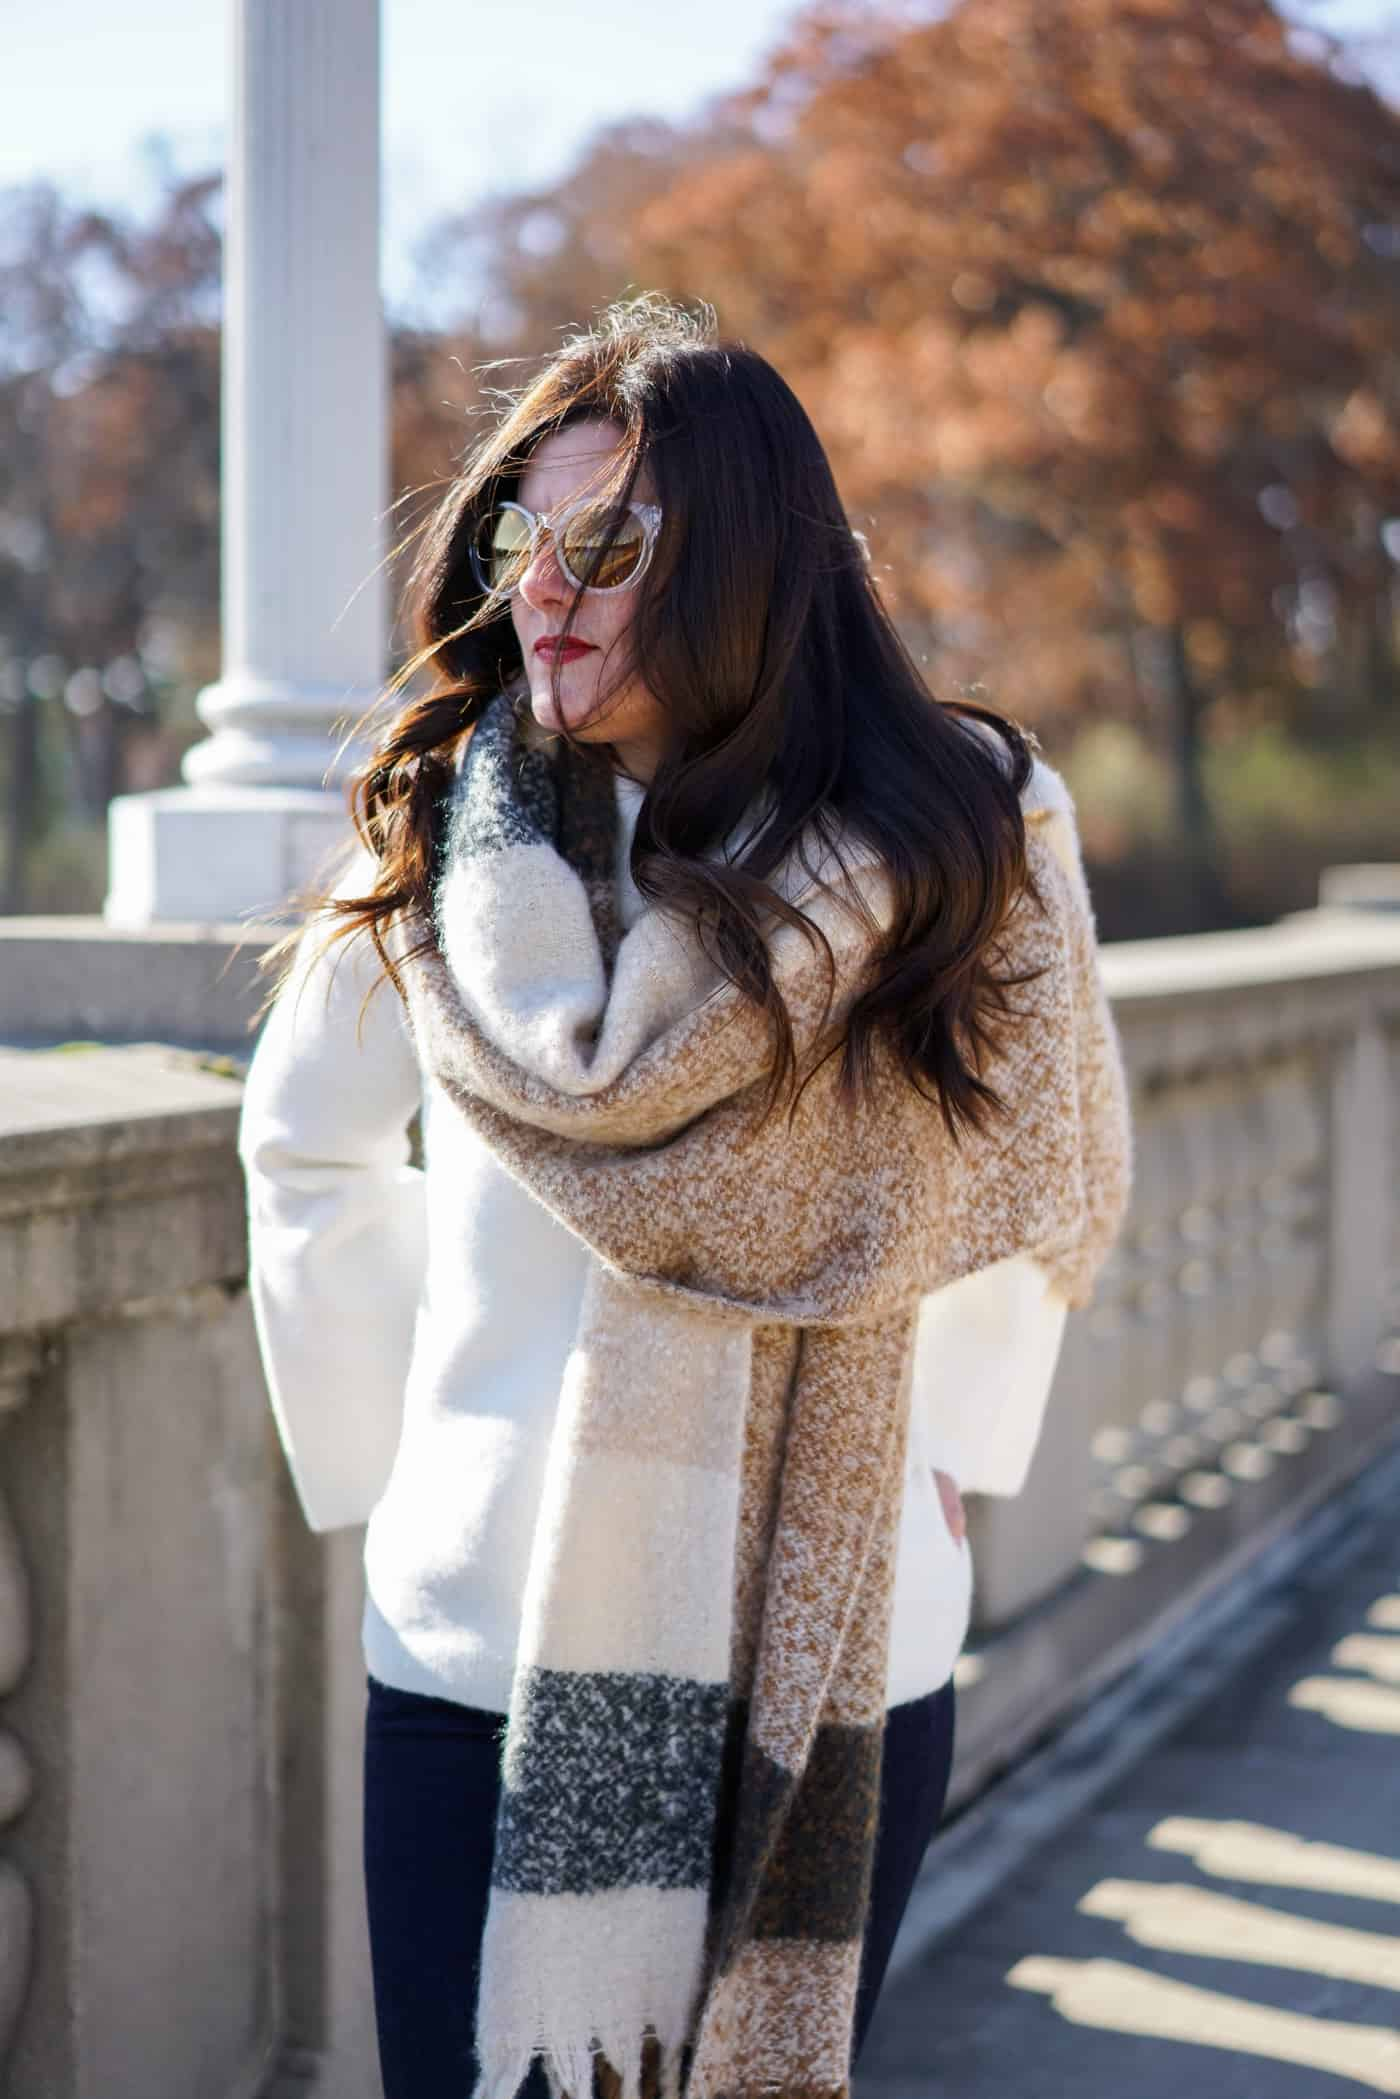 A Lily Love Affair shares 30 cute fall sweaters under $30 wearing a long plaid scarf and cream oversized sweater